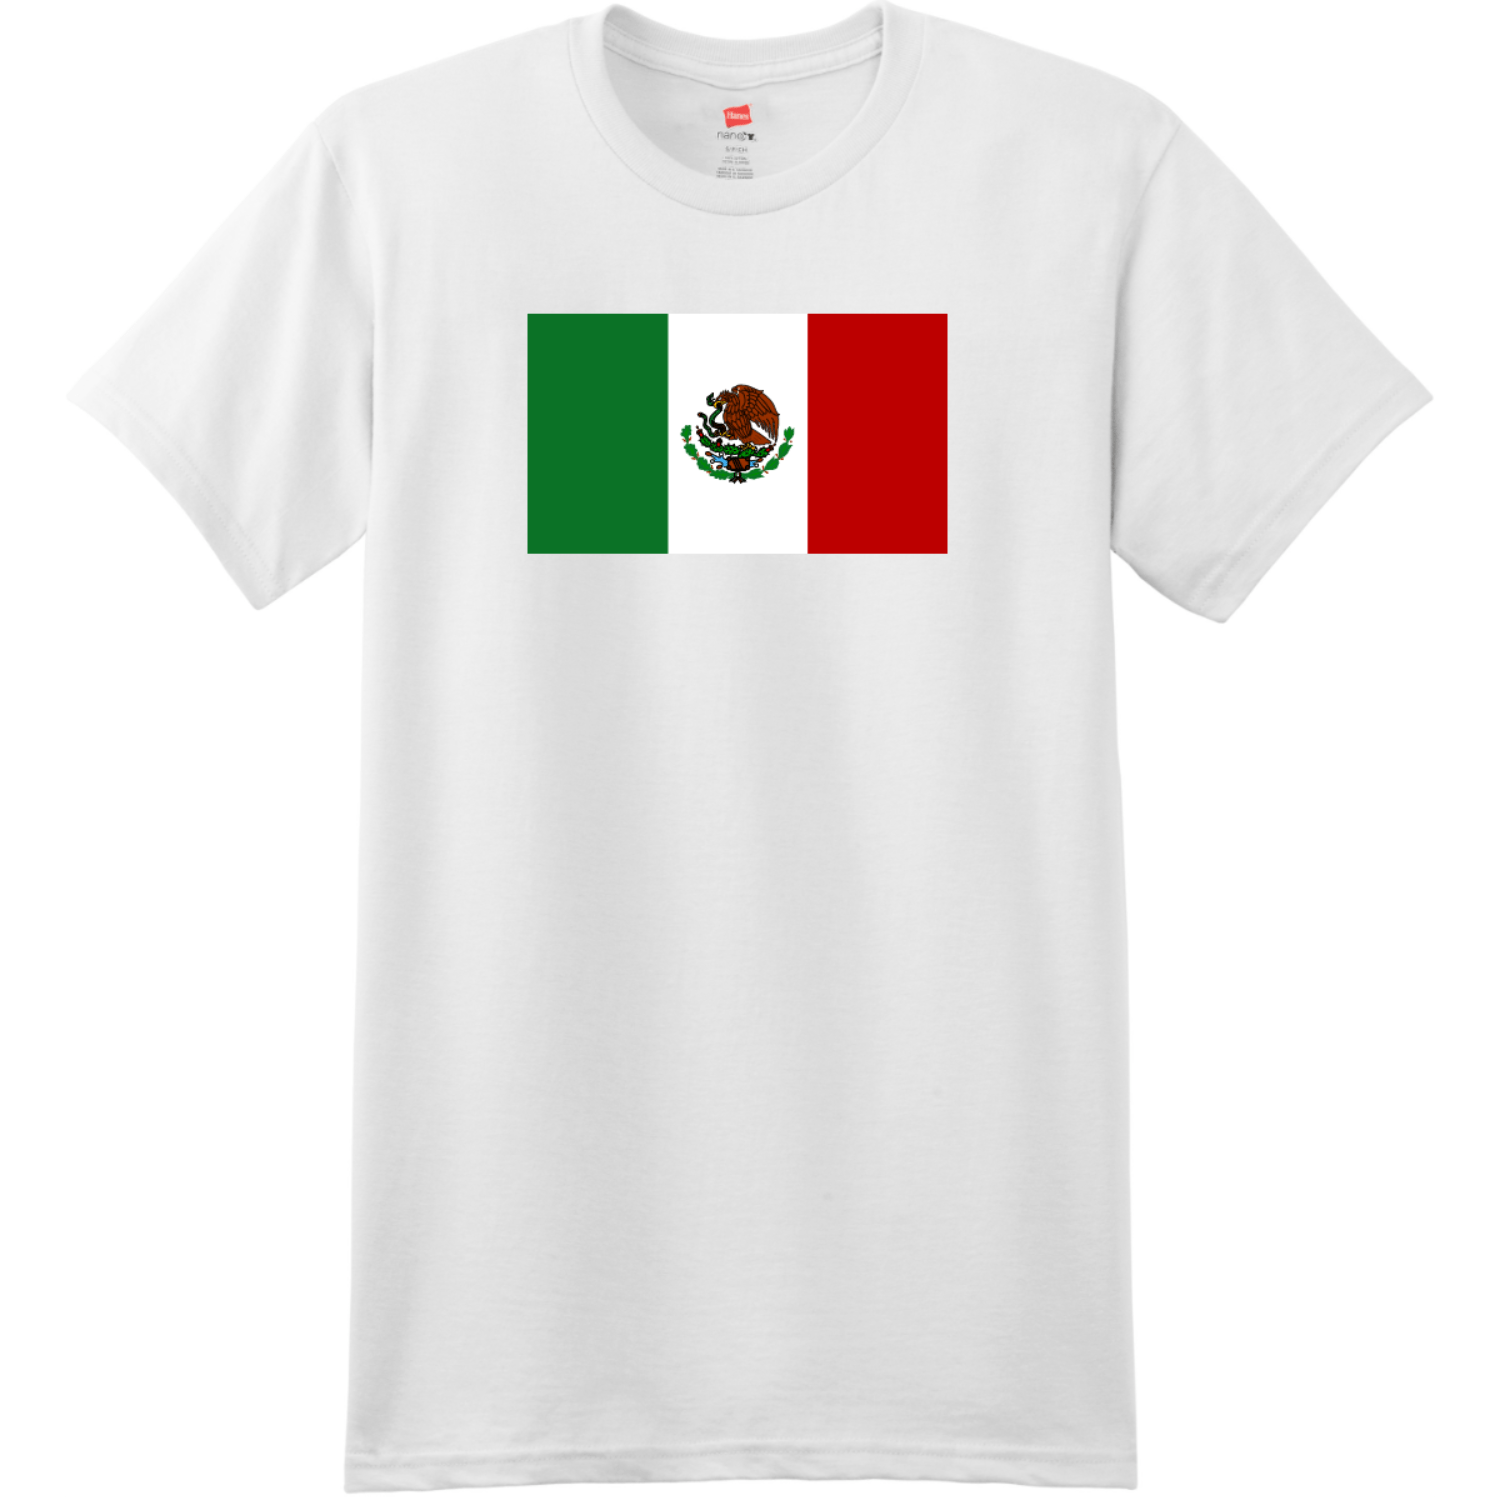 Mexico Flag T Shirt White Hanes Nano 4980 Ringspun Cotton T Shirt